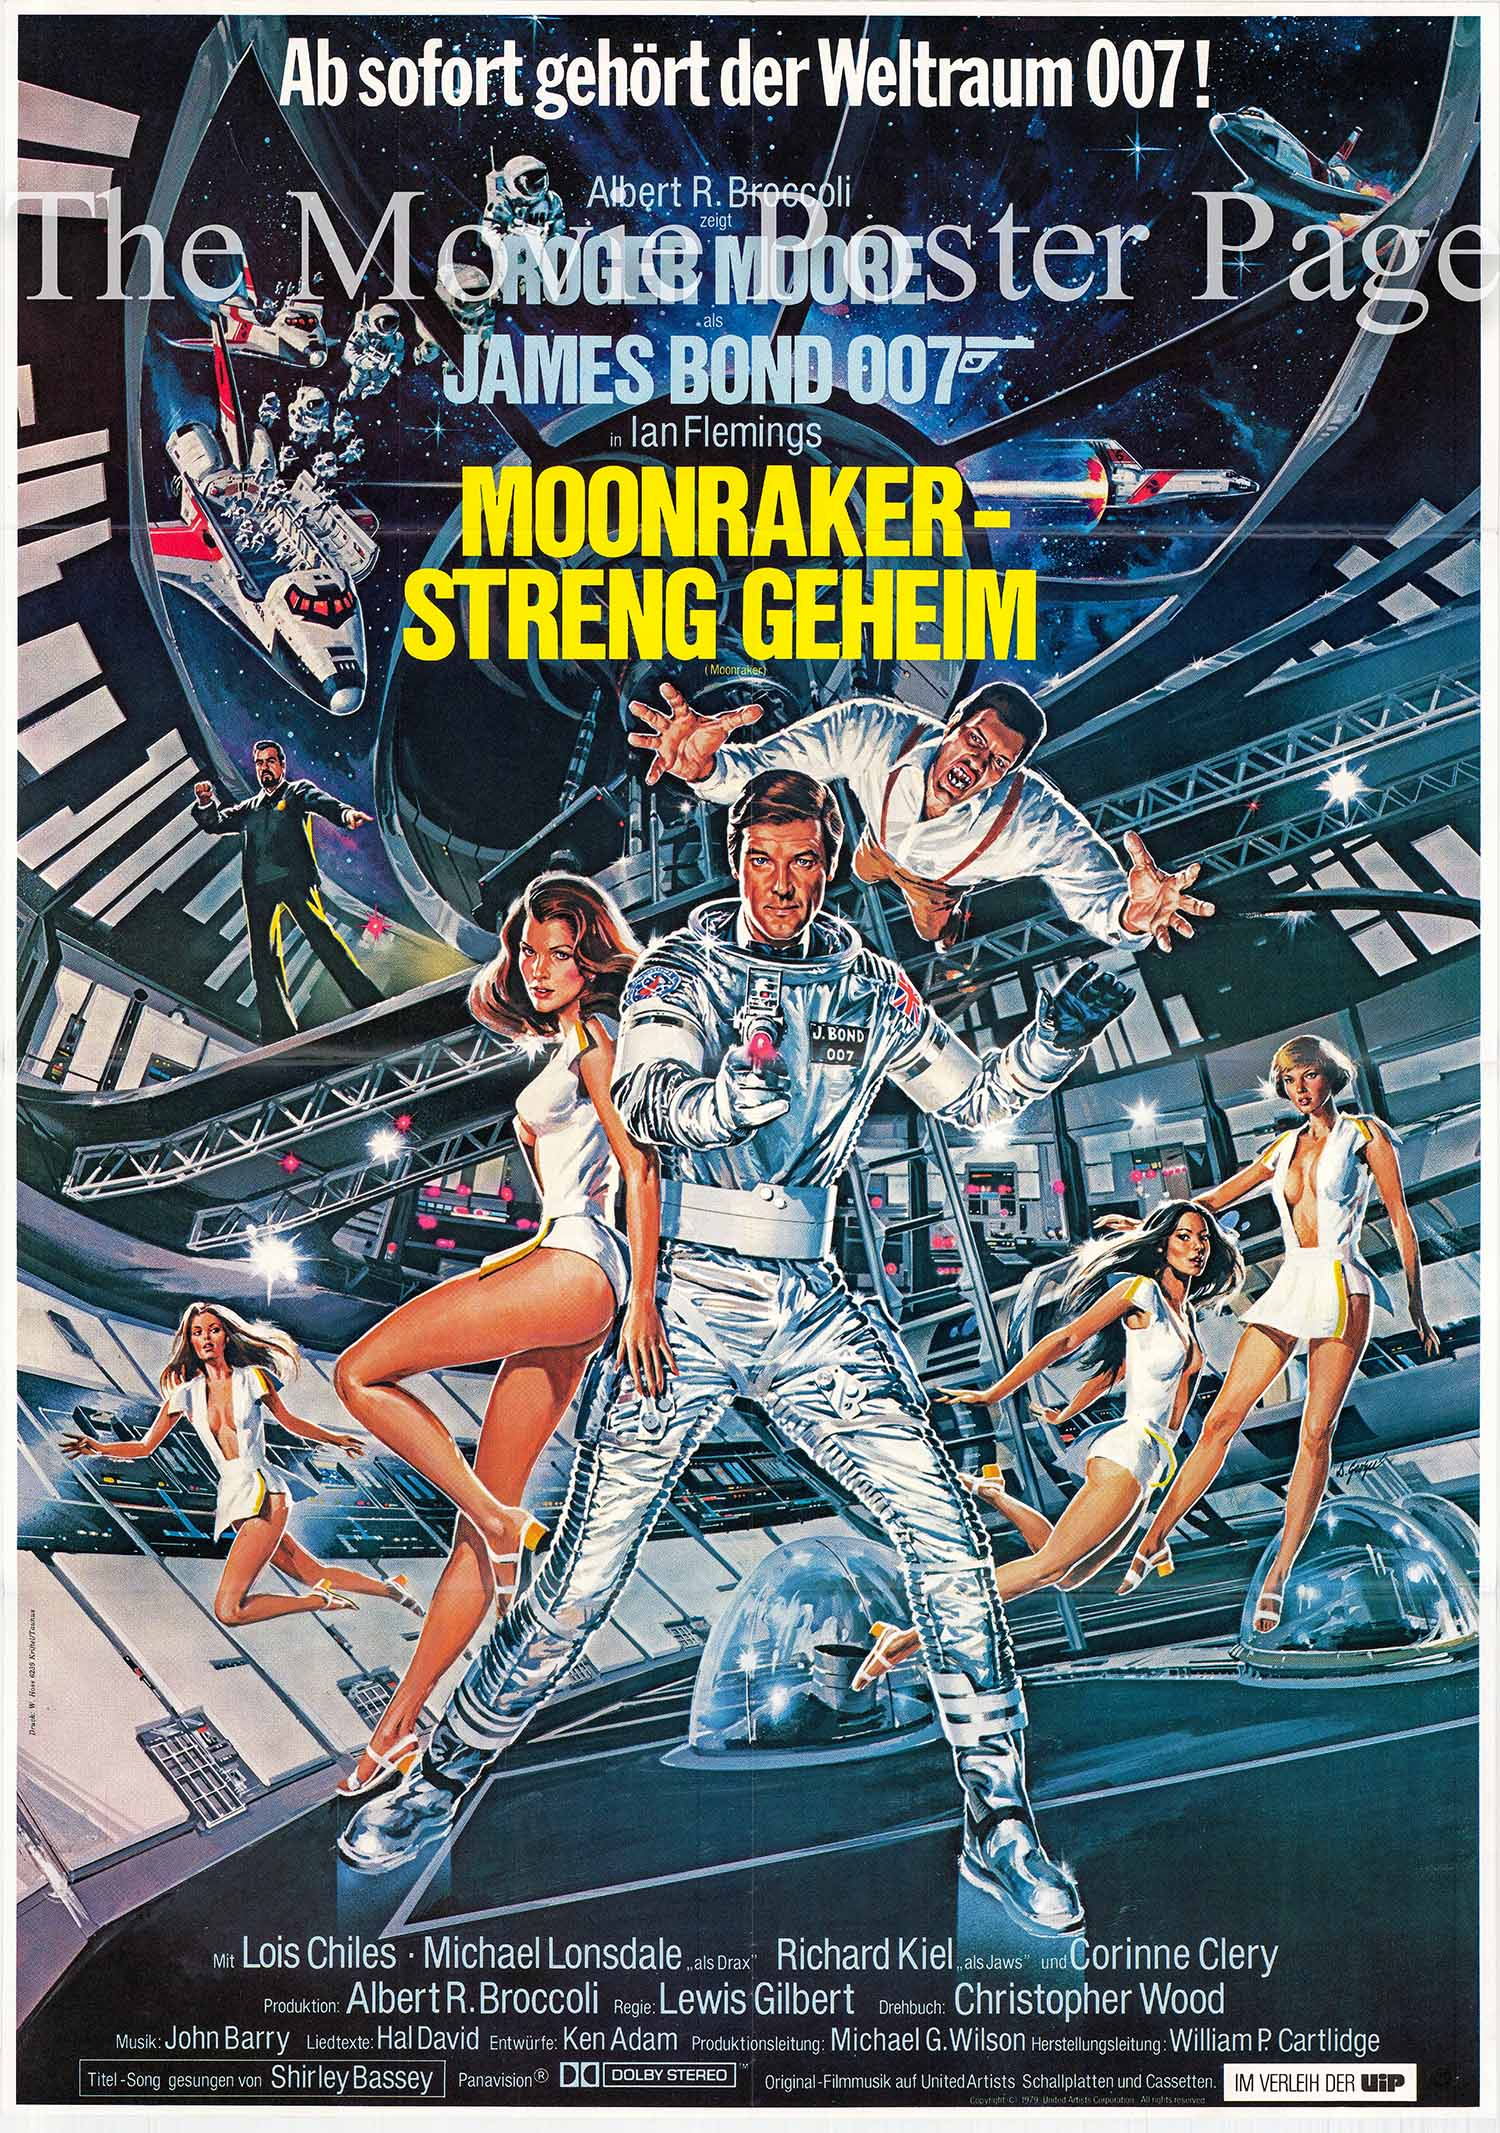 This is a German one-sheet poster made to promote the 1979 Lewis Gilbert film Moonraker starring Roger Moore as James Bond.